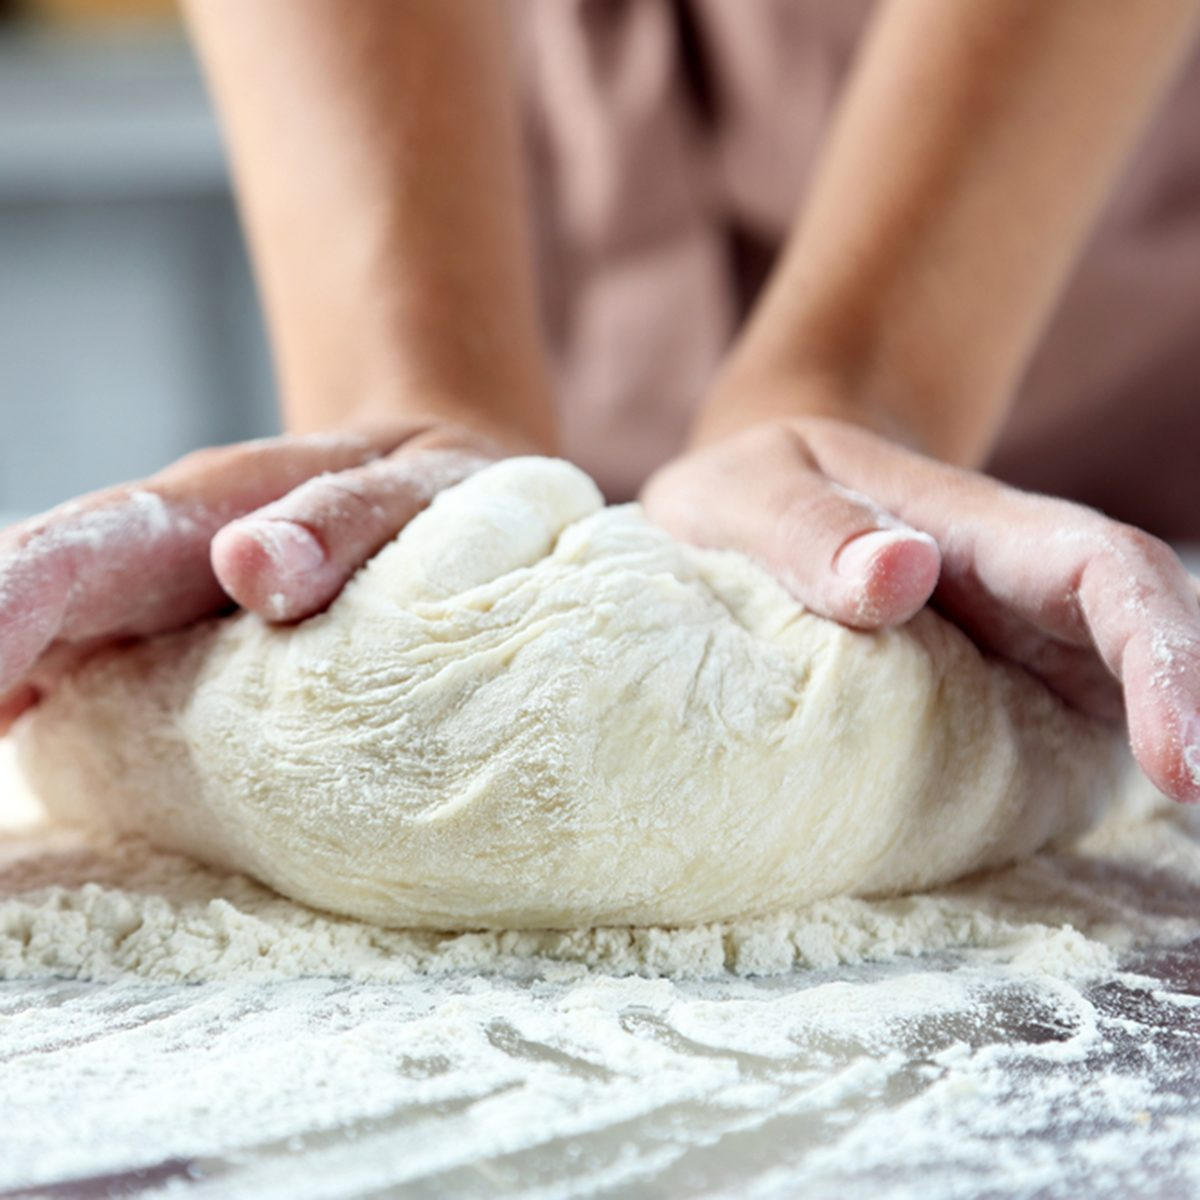 Making dough by female hands at bakery; Shutterstock ID 321264986